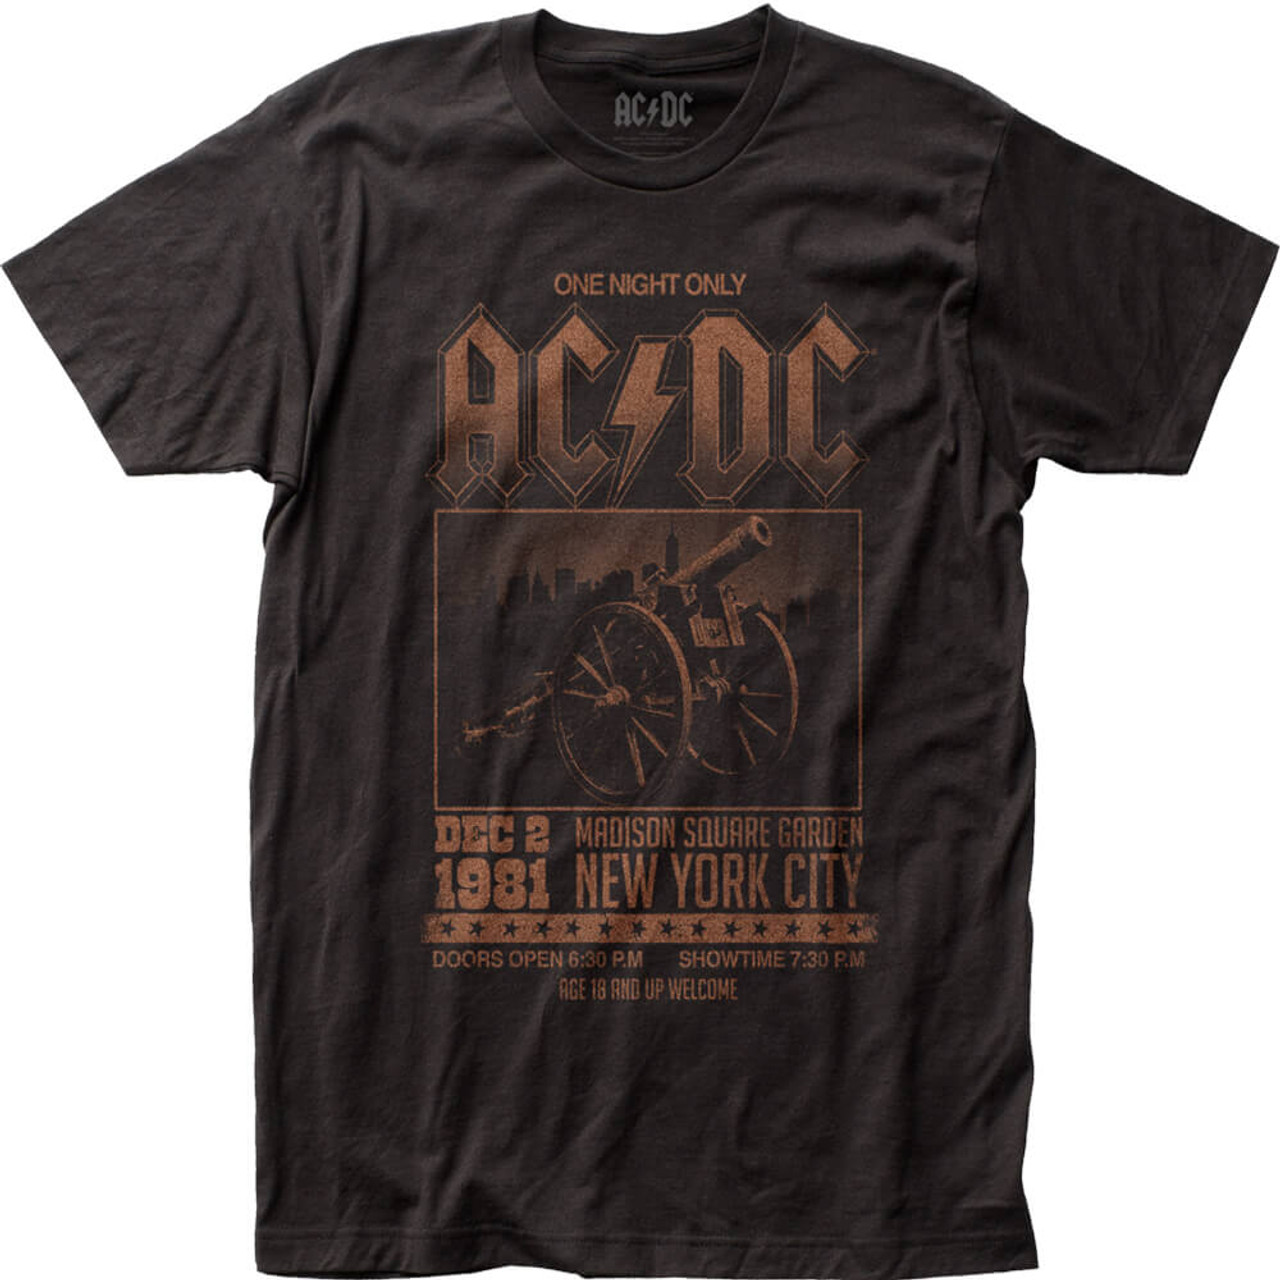 AC/DC Madison Square Garden December 1981 Concert Promo Poster T-shirt